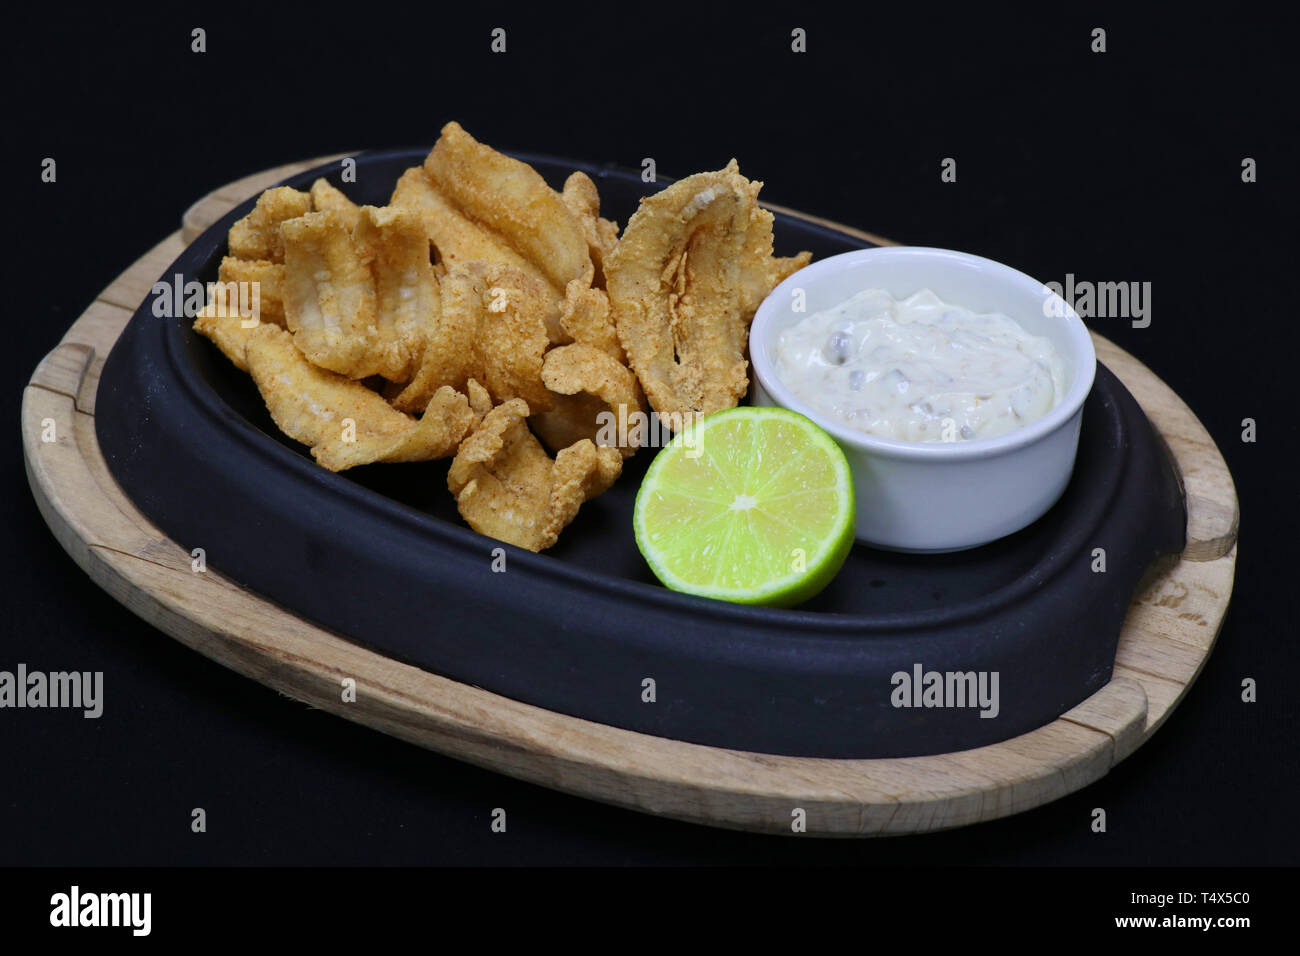 deep fried anchovies with tartar sauce and lime wedge in a serving dish - Stock Image